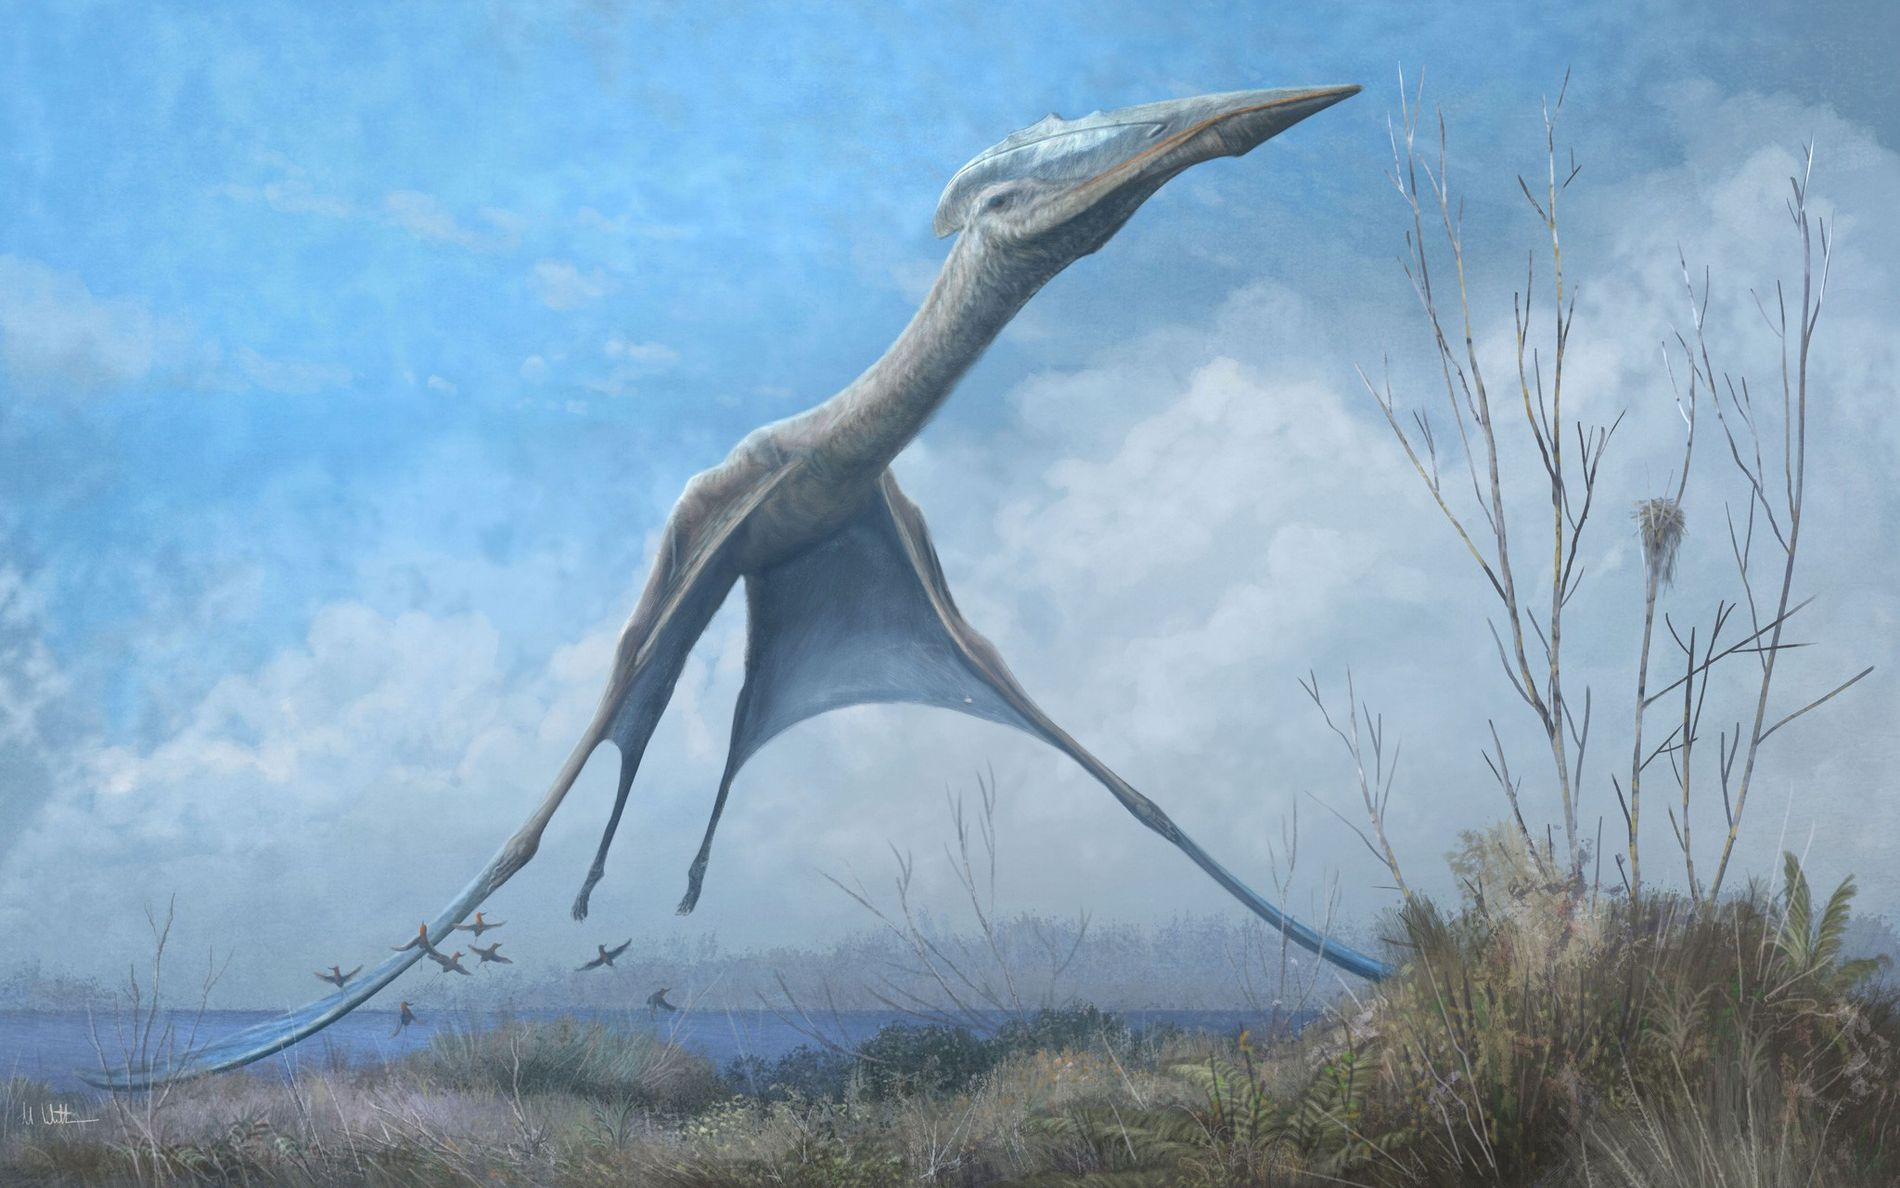 <p>An azhdarchid pterosaur takes flight in Romainia in an illustration. Fossils recovered from the fire-damaged Museu Nacional in Brazil show that flying reptiles from this same group also soared over Antarctica in the late Cretaceous.</p>